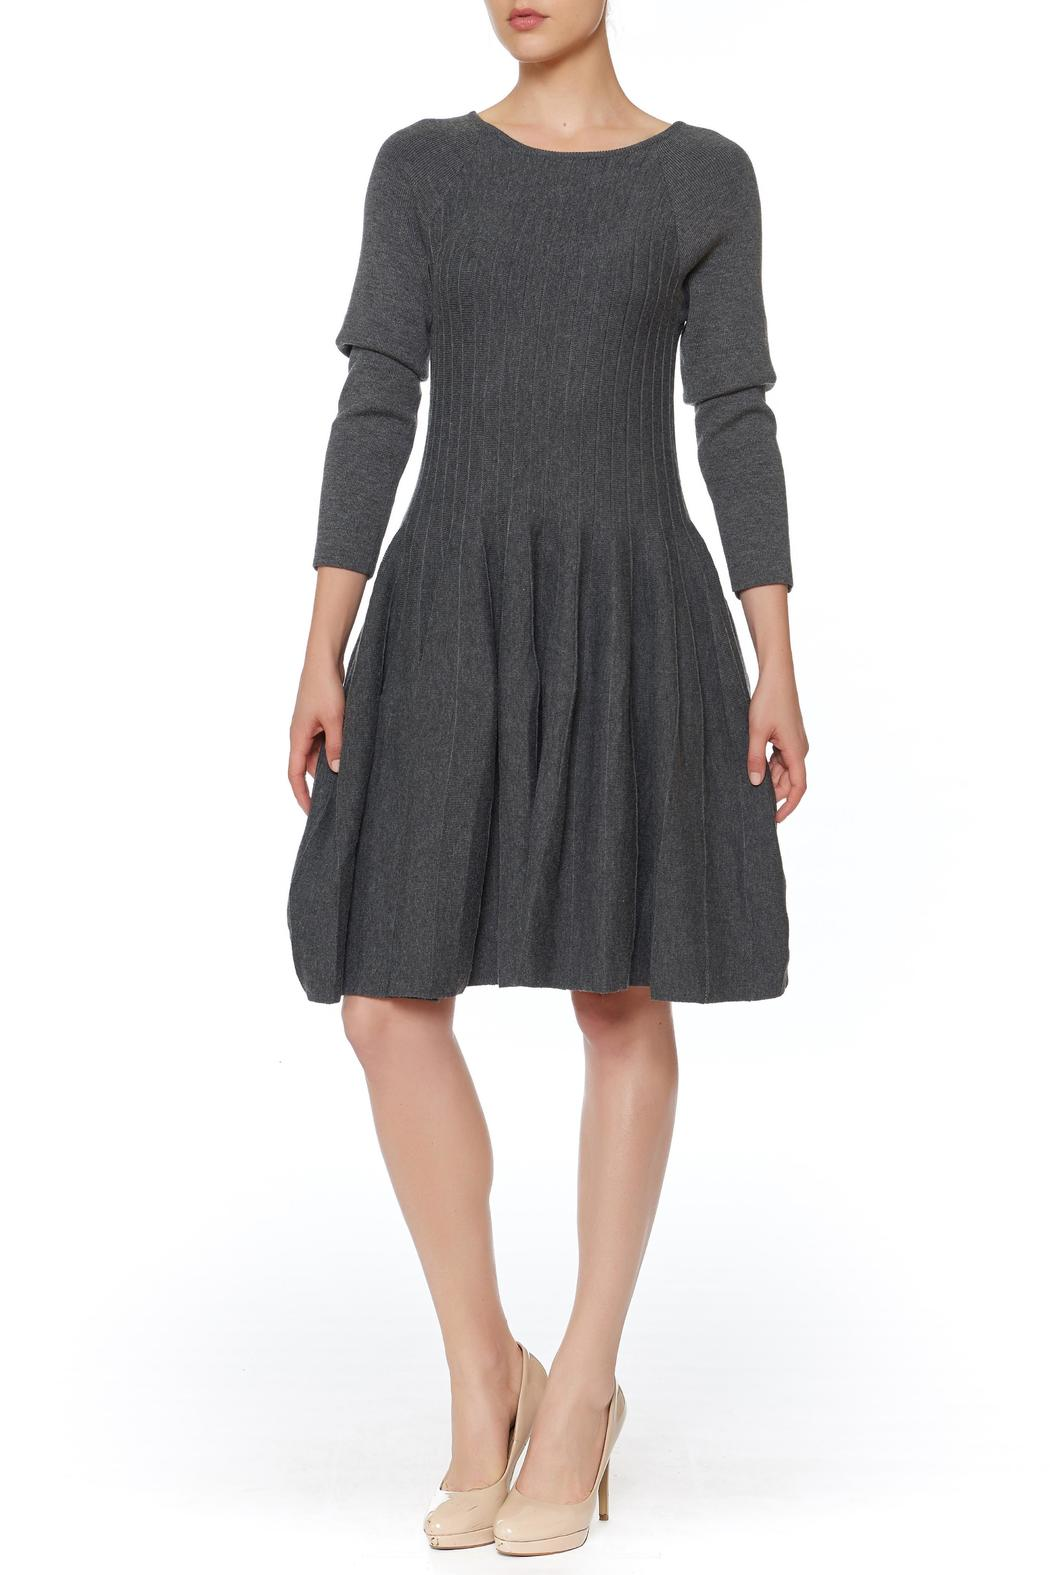 She + Sky Fit And Flare Dress - Main Image